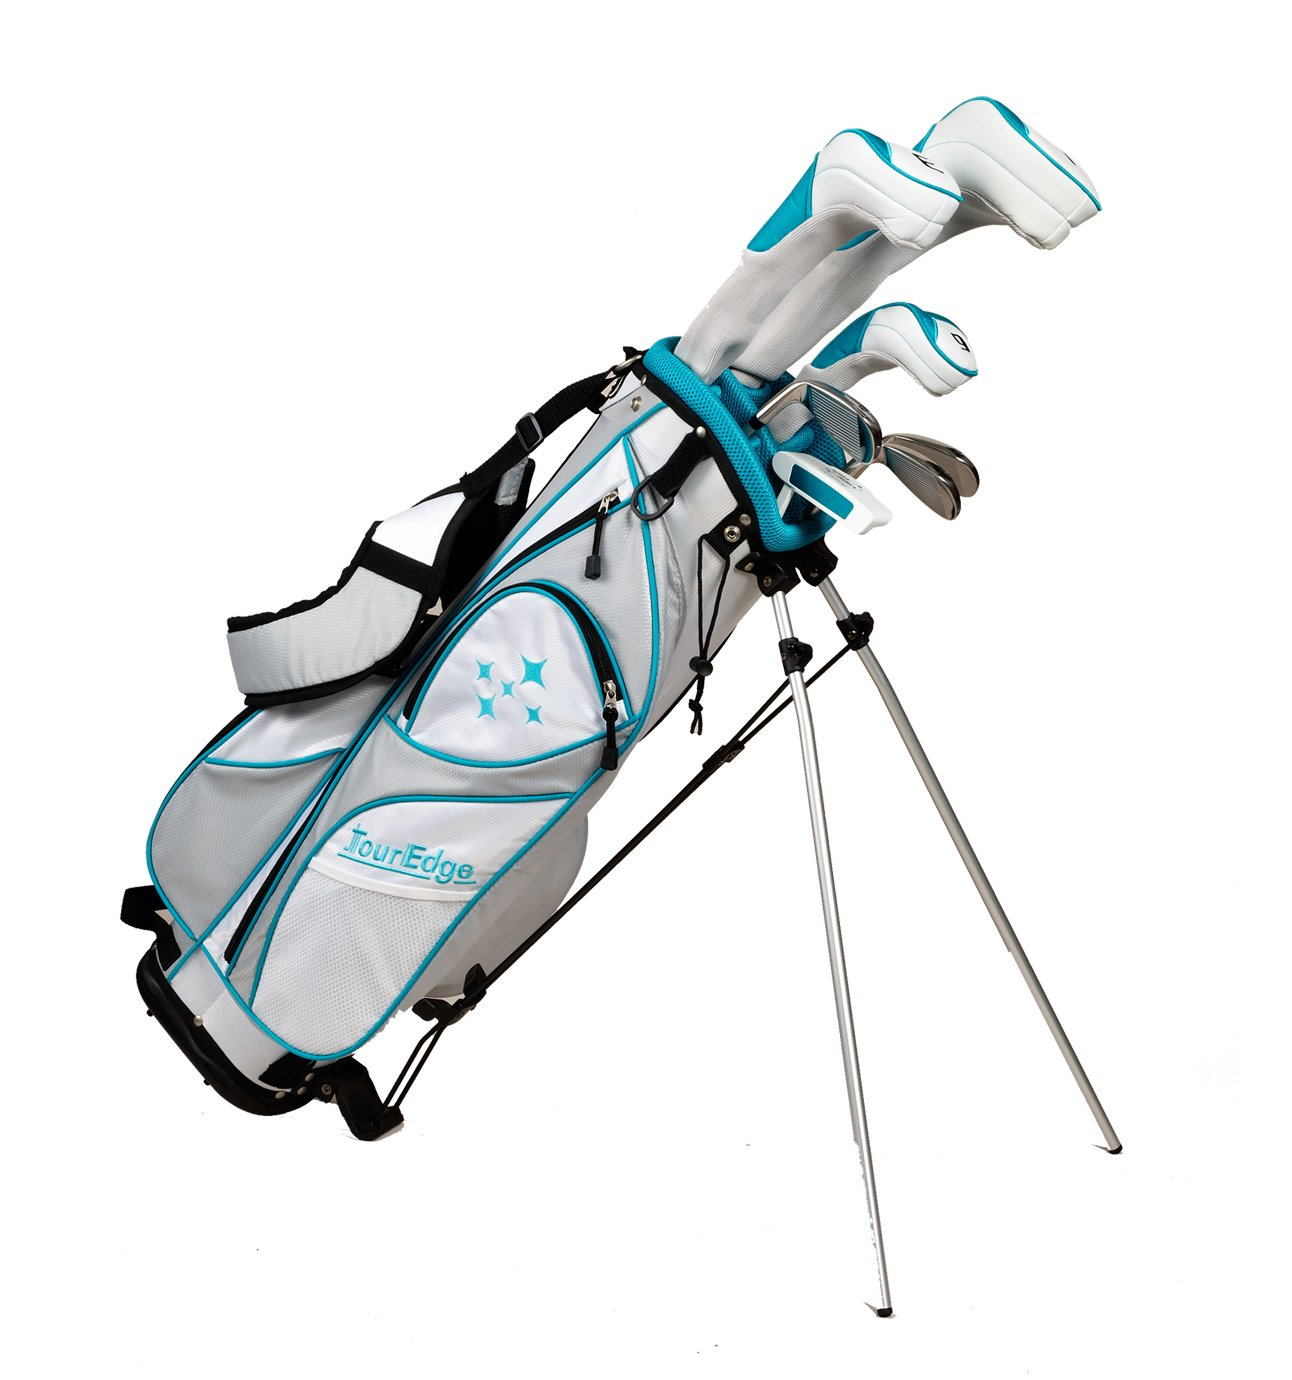 Amazon.com: Tour Edge 2014 Lady de la mujer Edge Golf ...